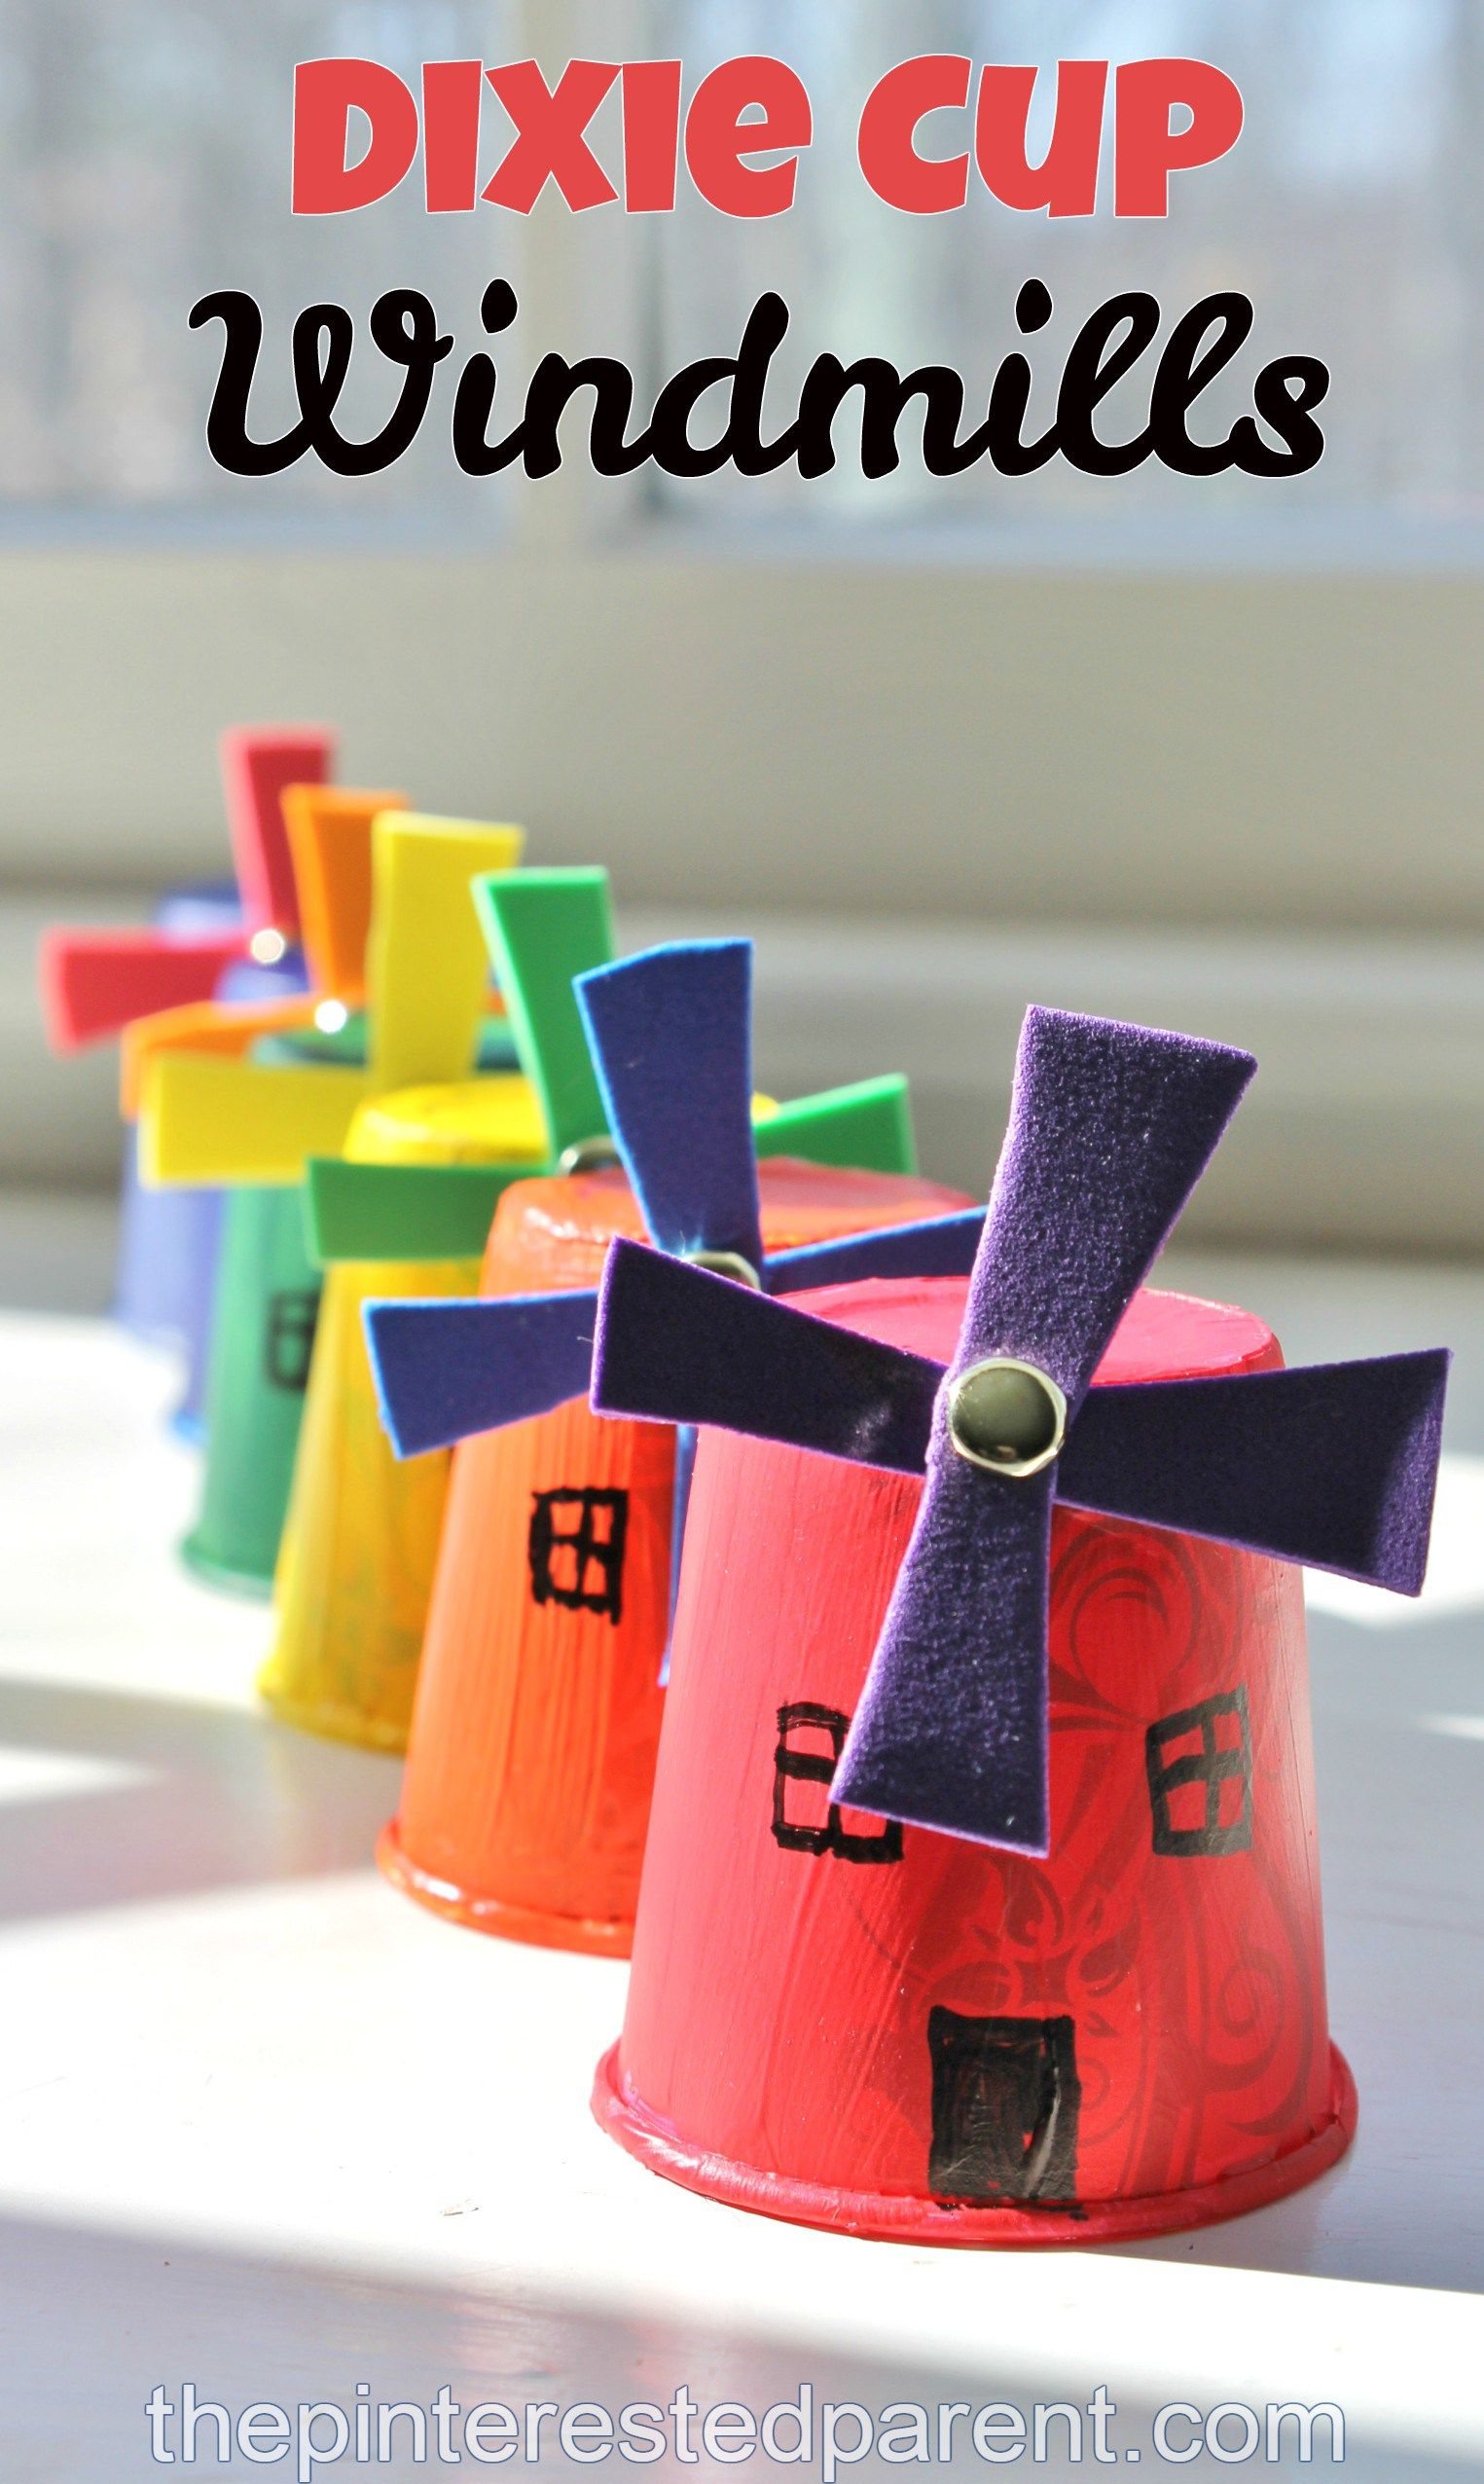 Dixie Cup Windmills (With images) Easy crafts for kids